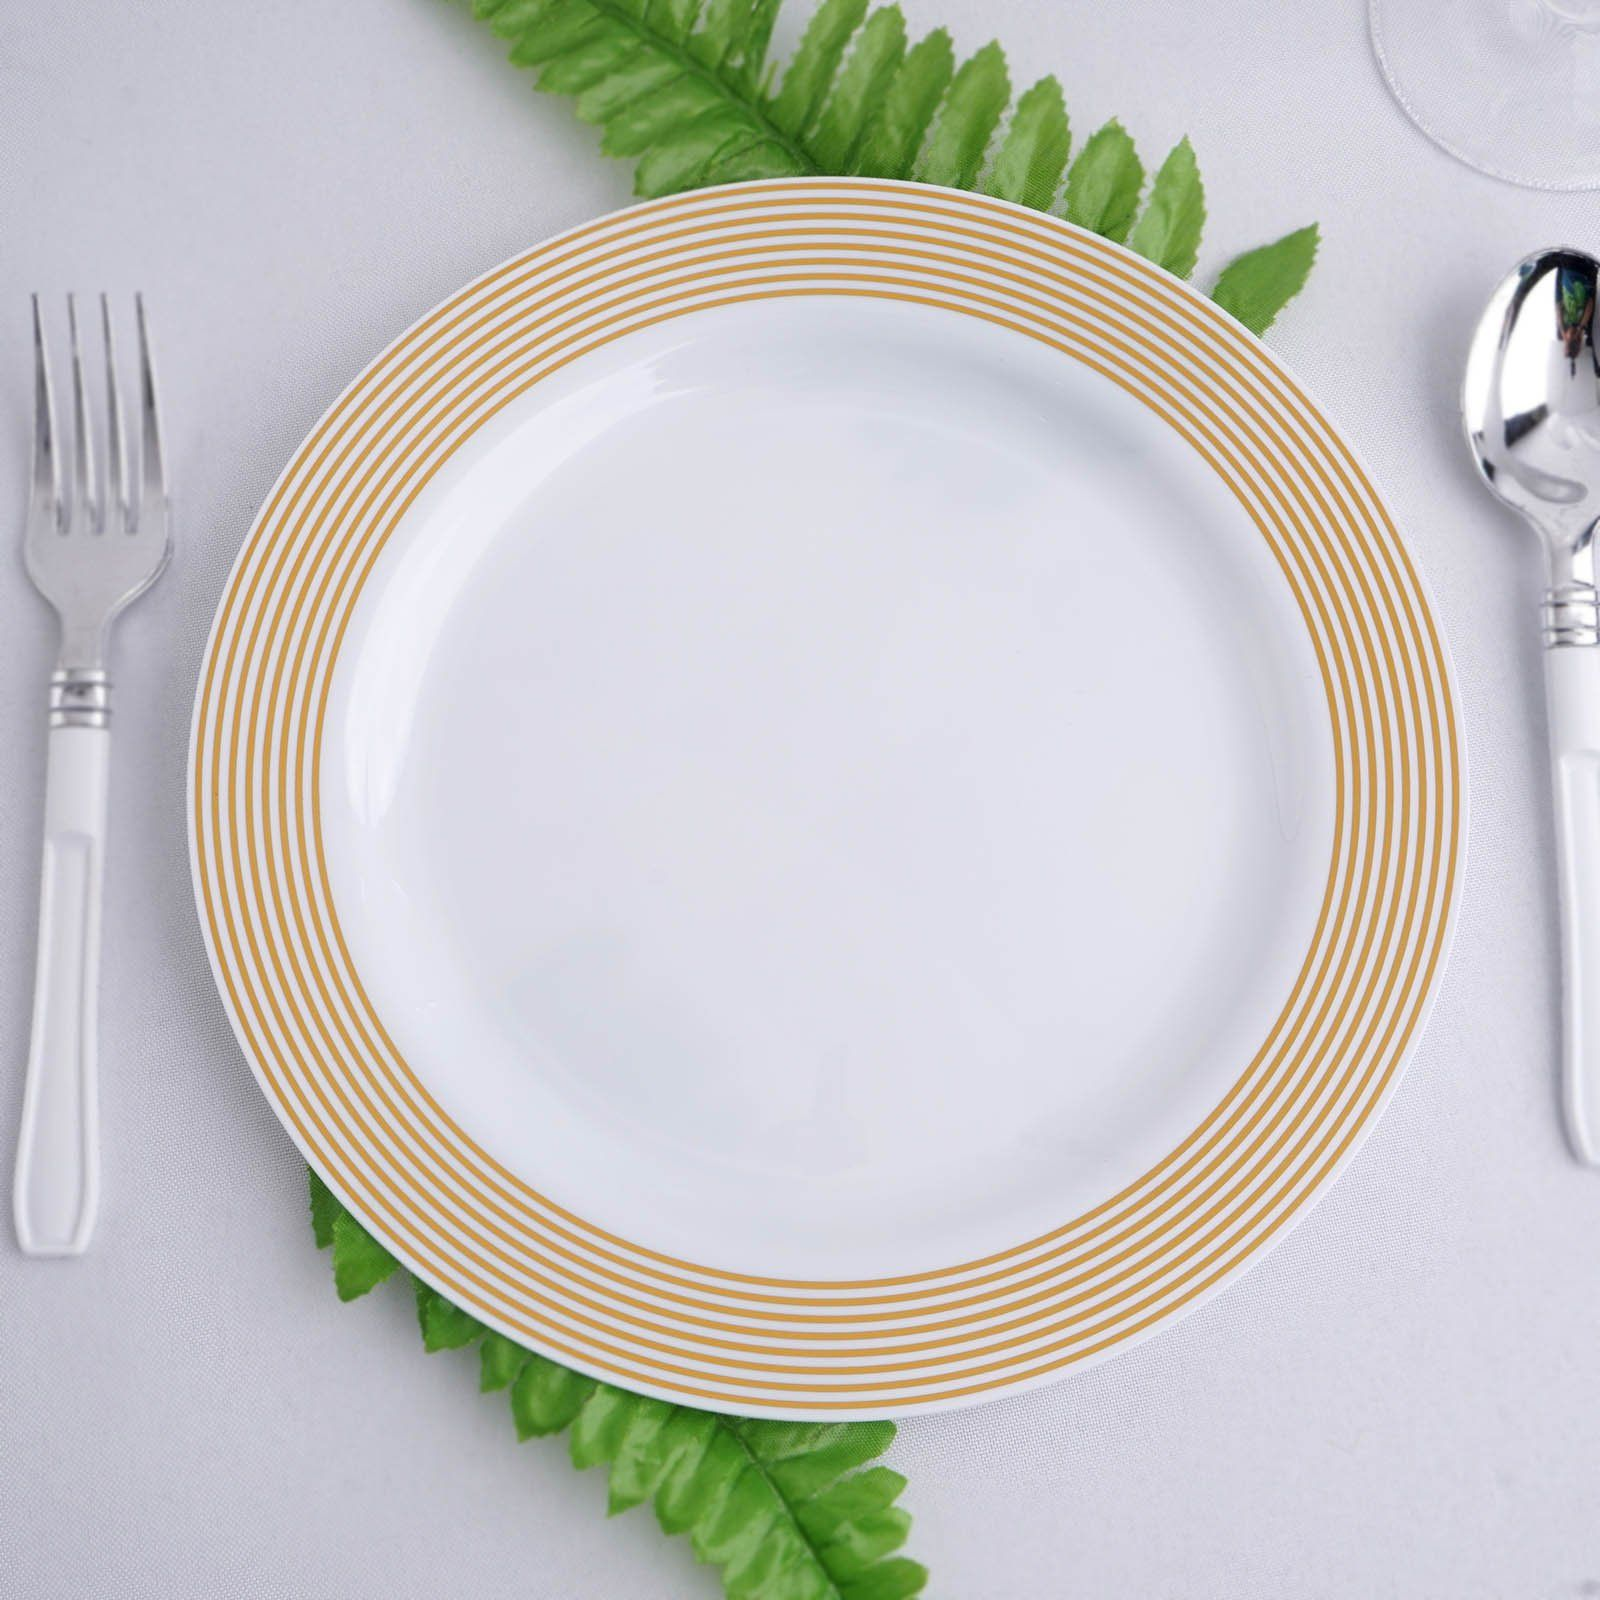 Set Of 10 9 White Round Plastic Dinner Plates Disposable Plates With Gold Striped Rim In 2020 Plastic Dinnerware Disposable Plates Dinner Plates